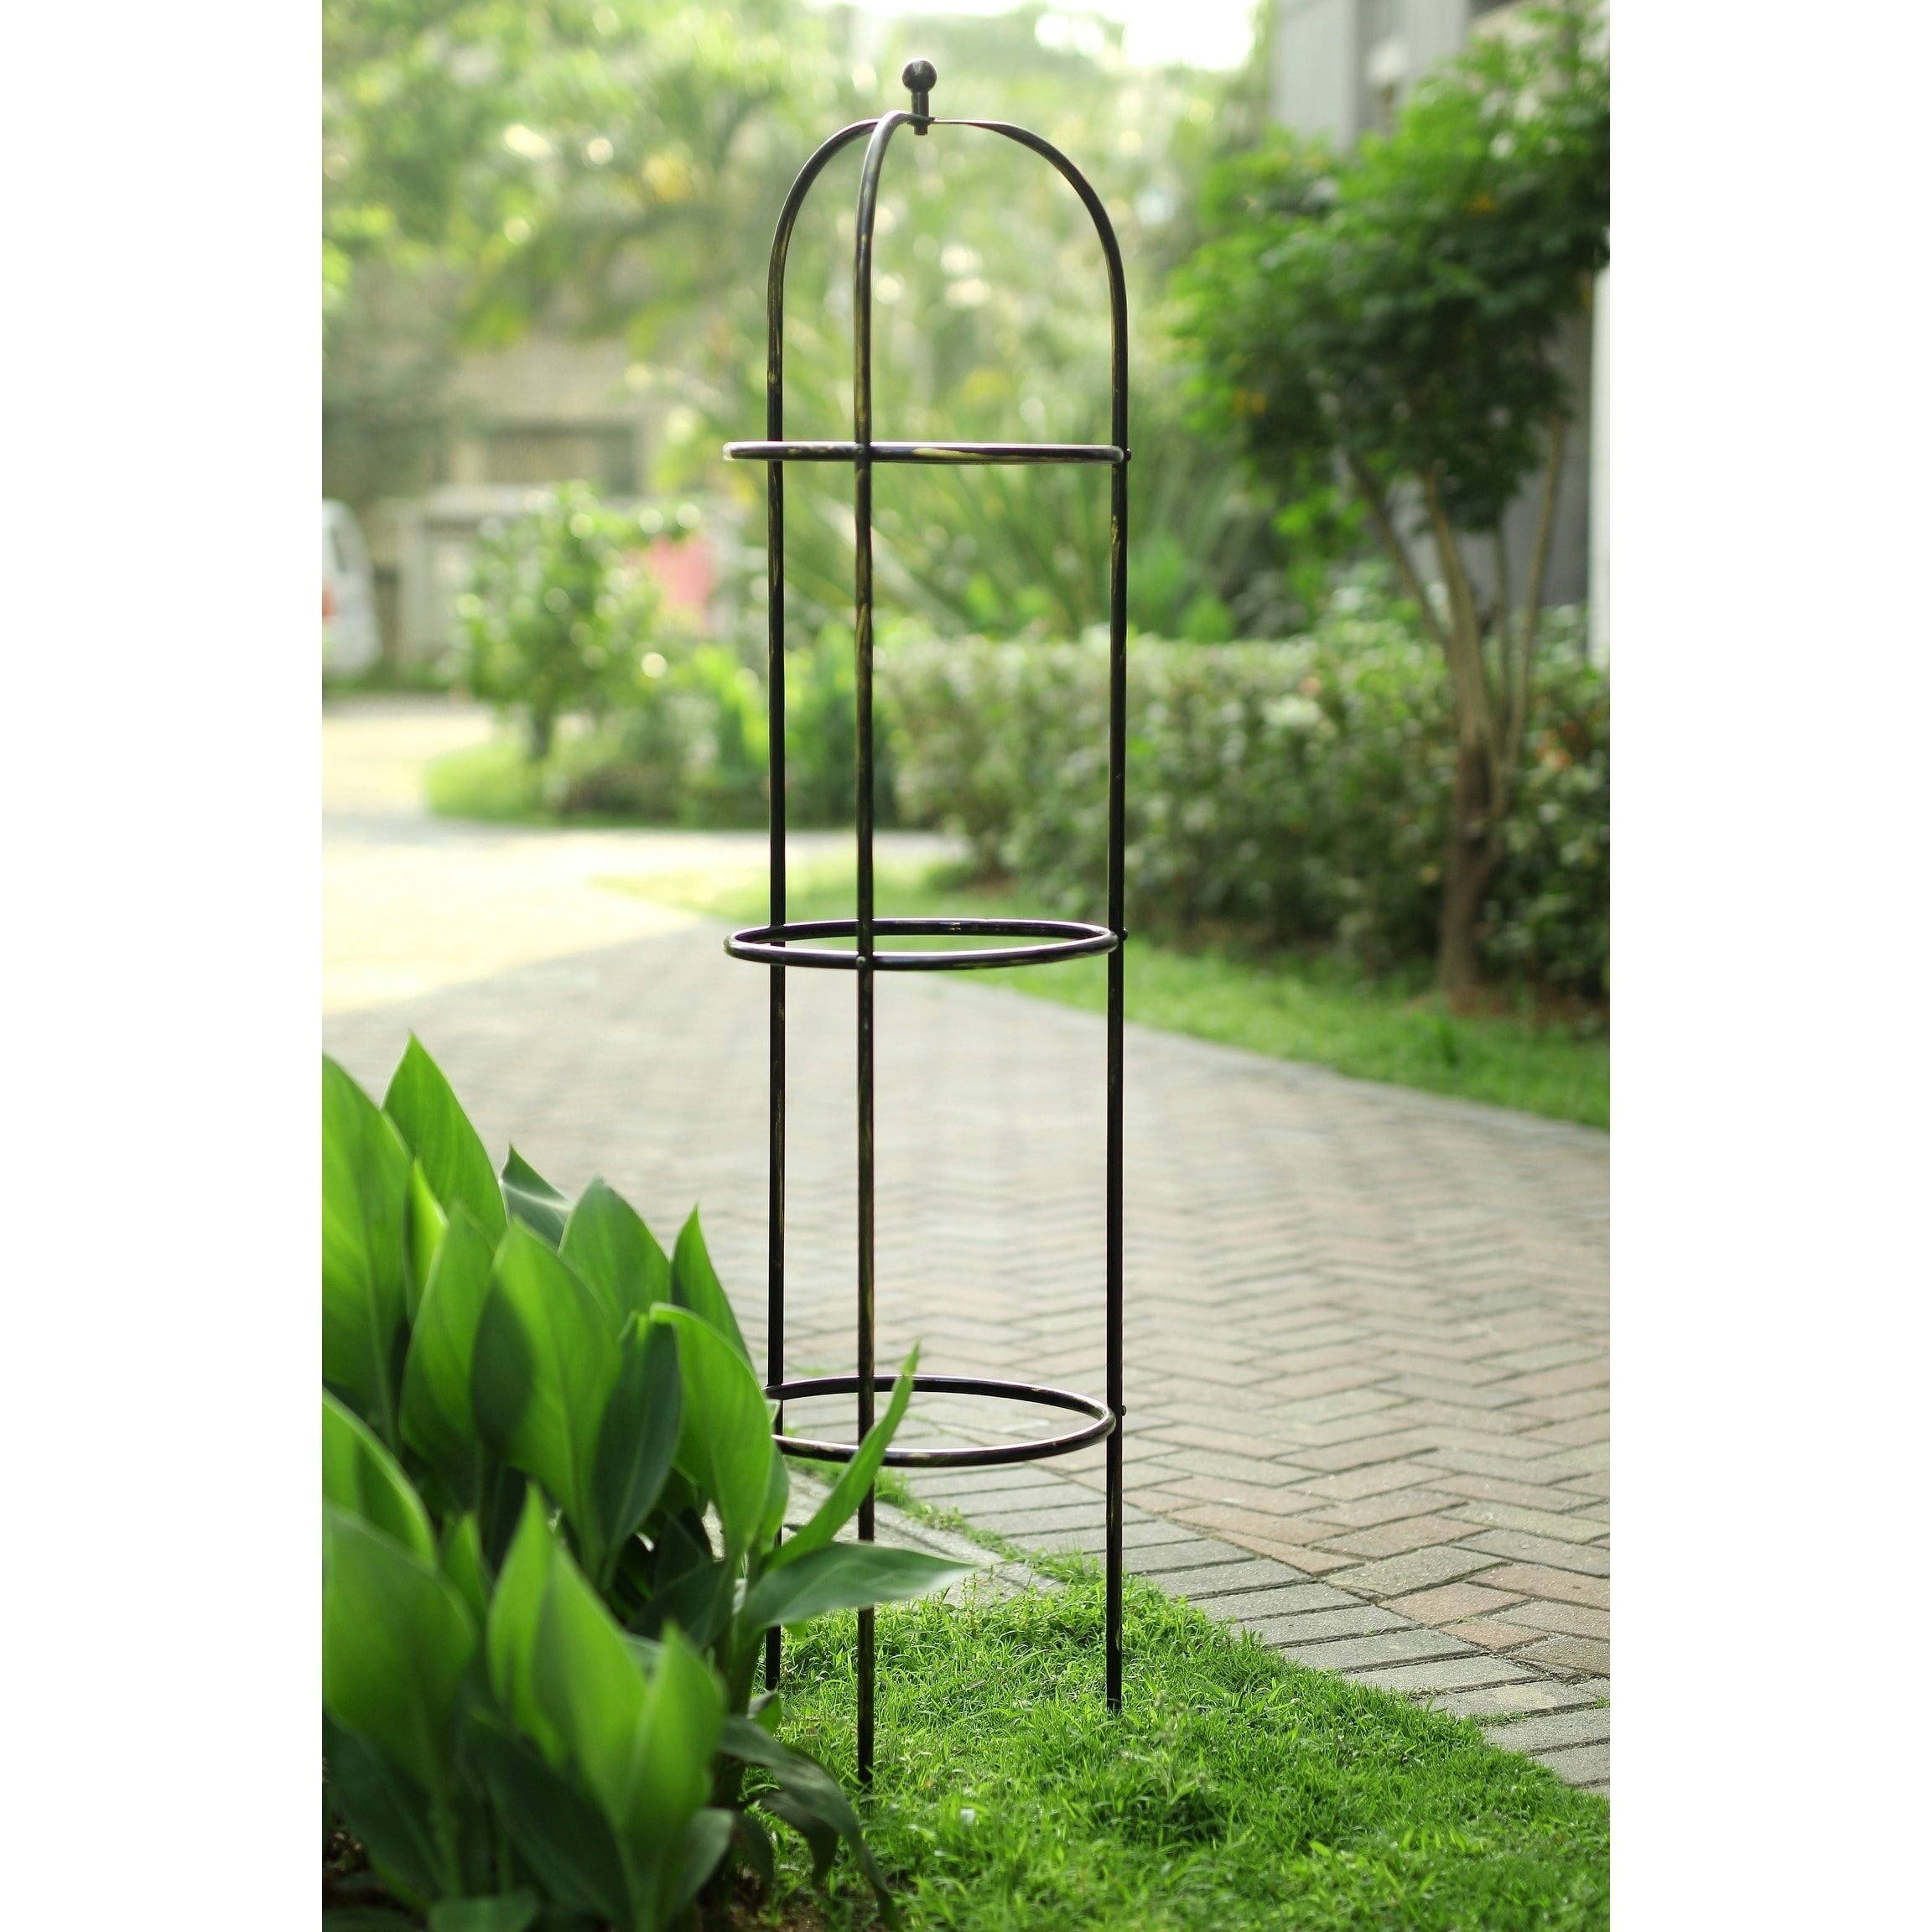 Cast Iron Metal Finial Plant Stake Garden Landscape Outdoor Yard Lawn Home Decor